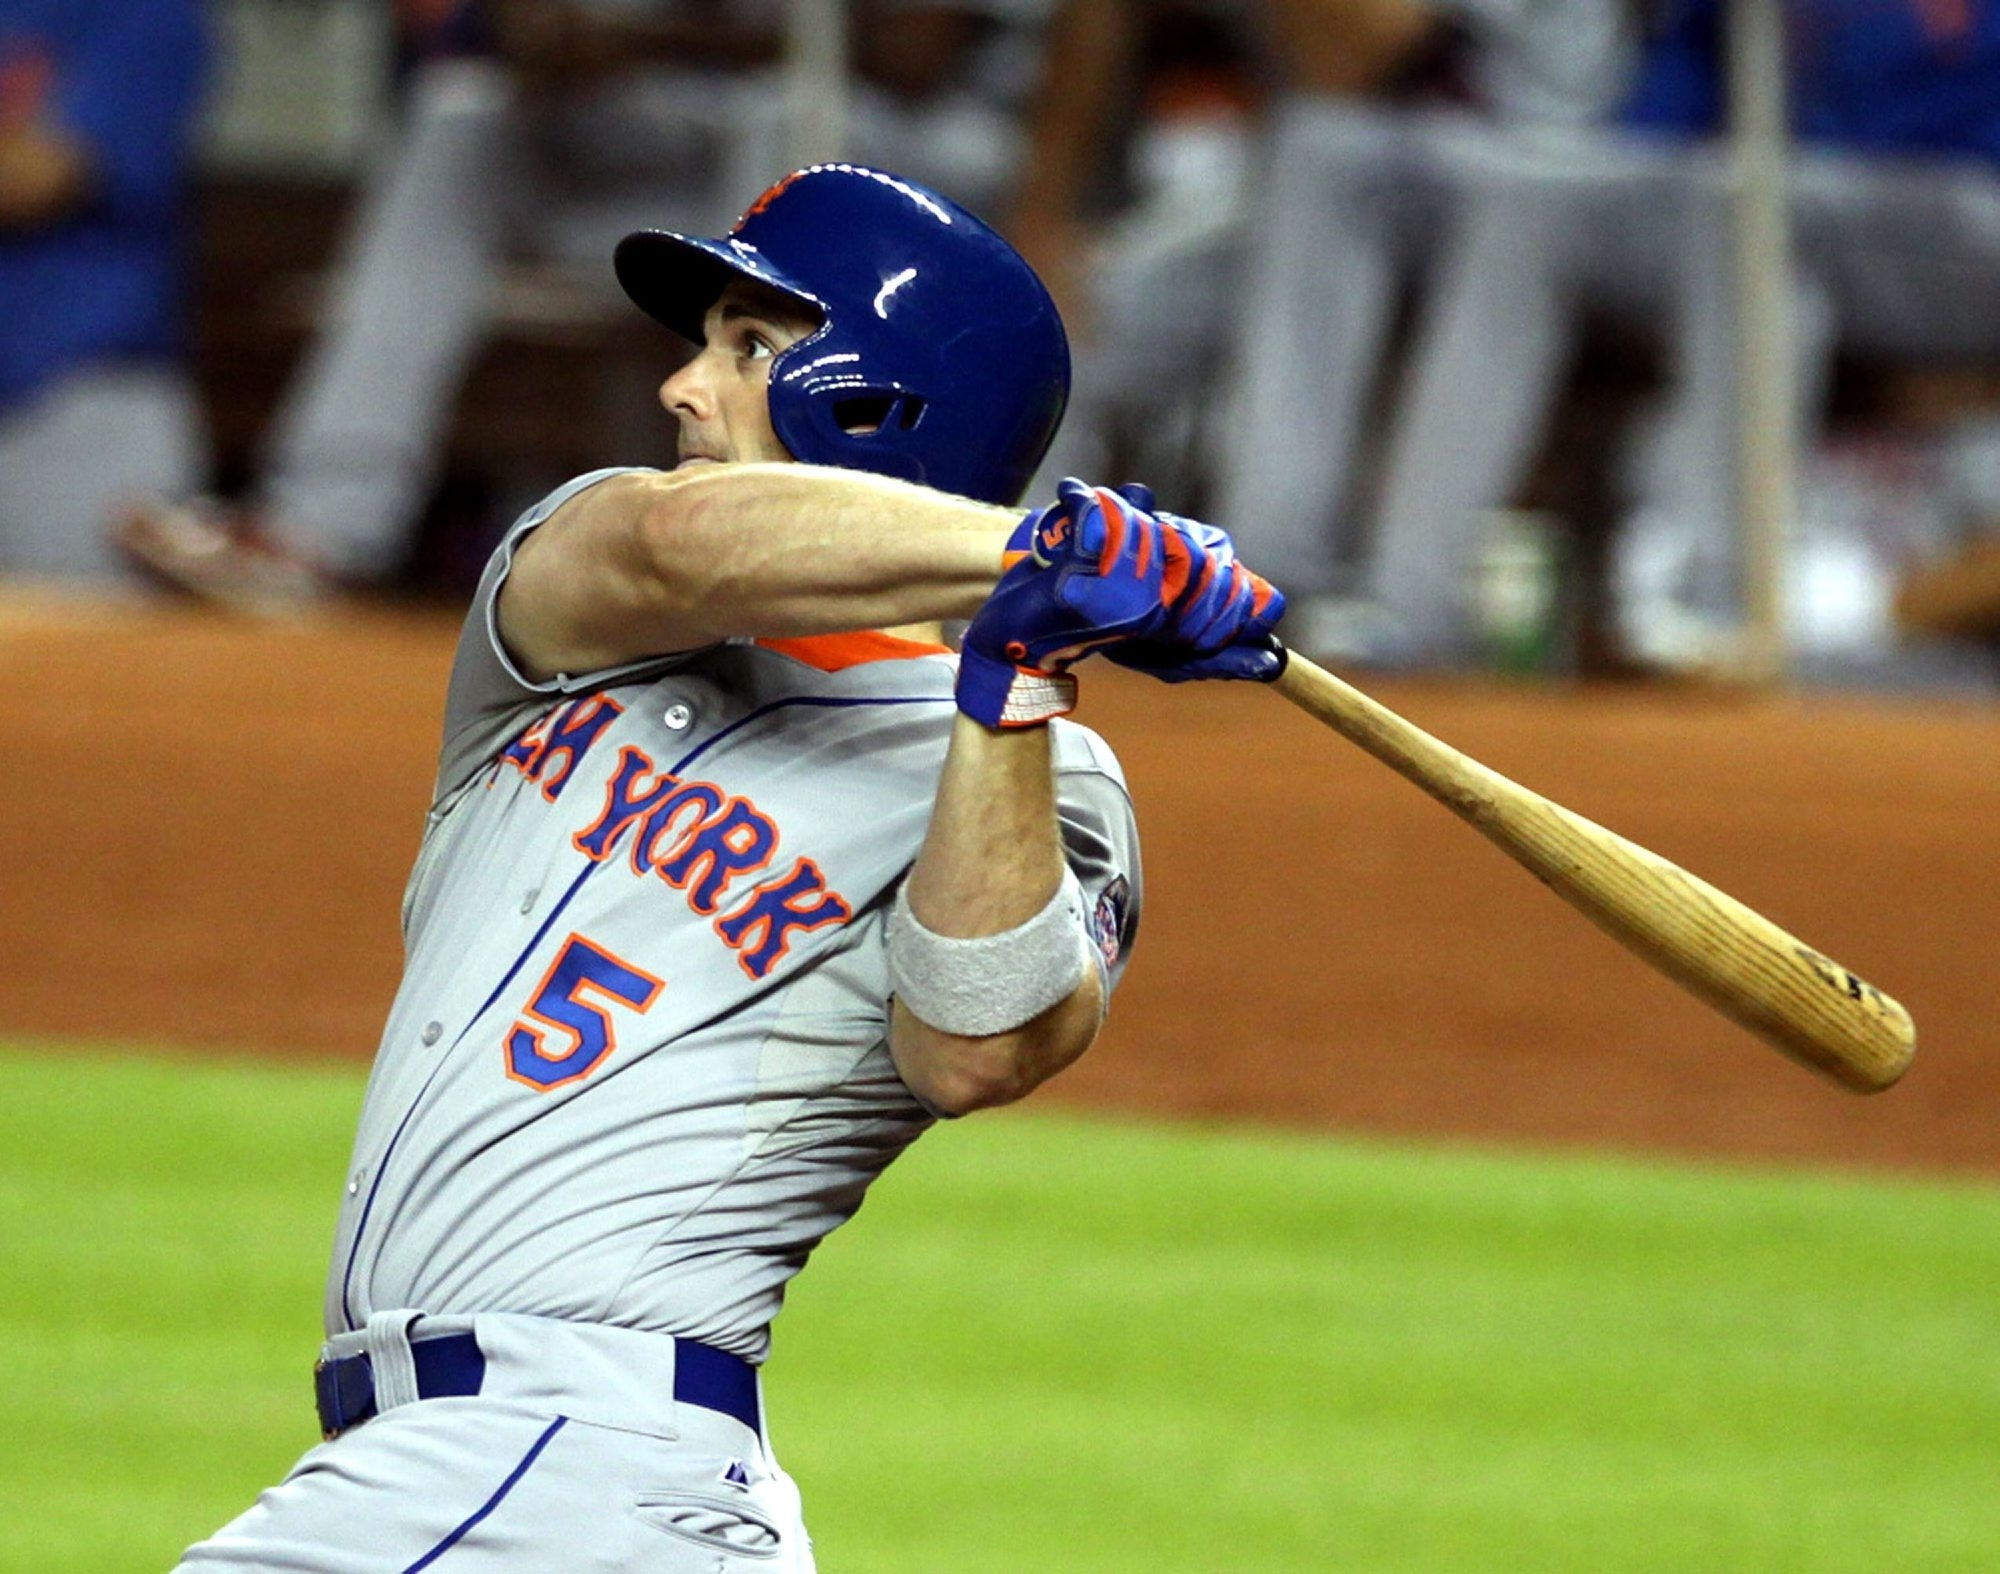 Third baseman David Wright has a record of steady production for the New York Mets, but his ability to stay healthy remains a concern for anyone drafting him.